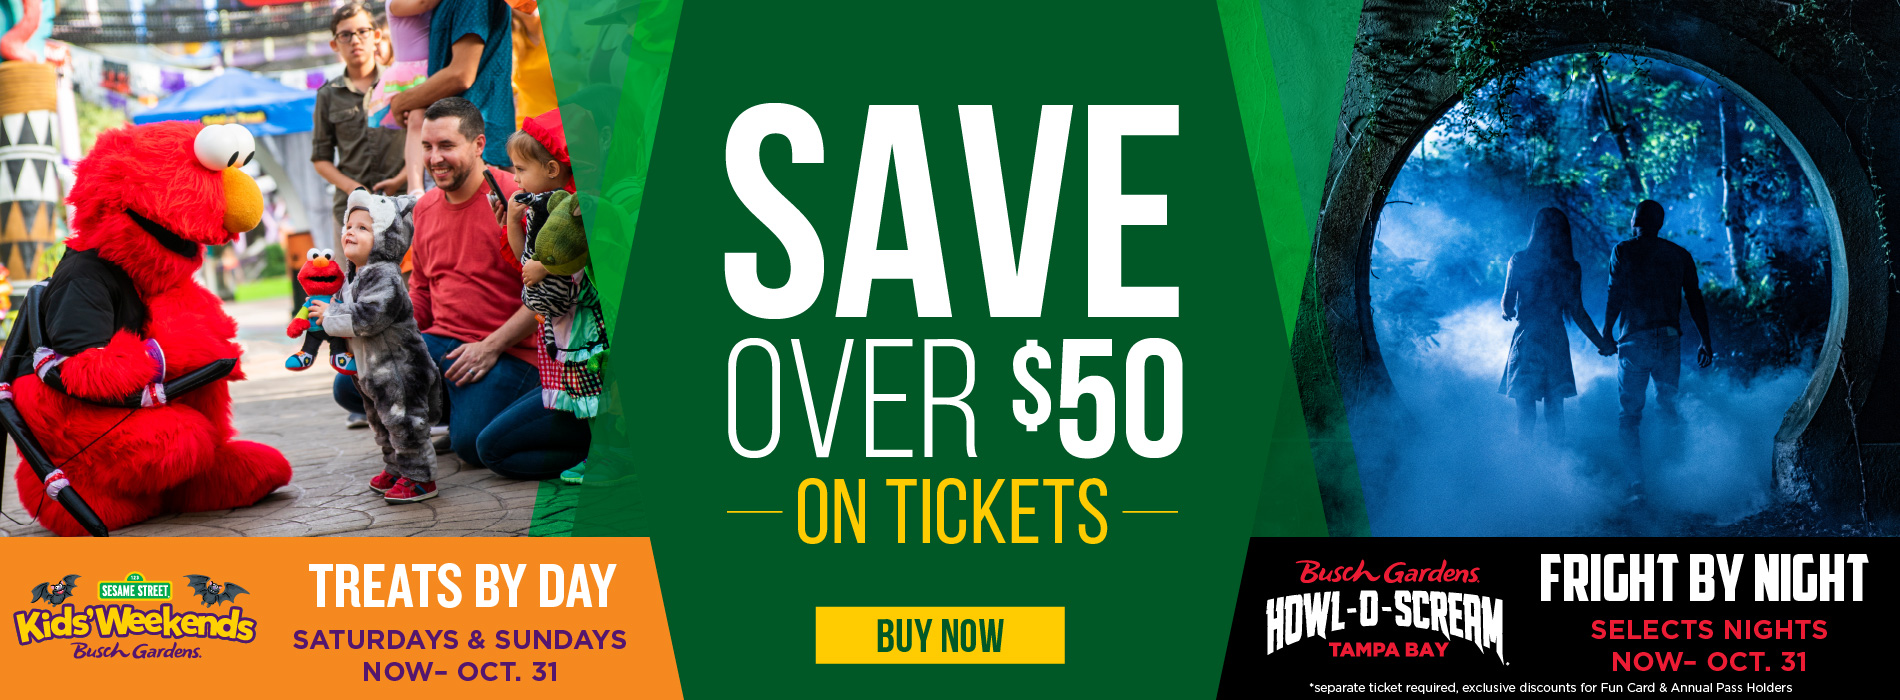 Save over $50 on tickets